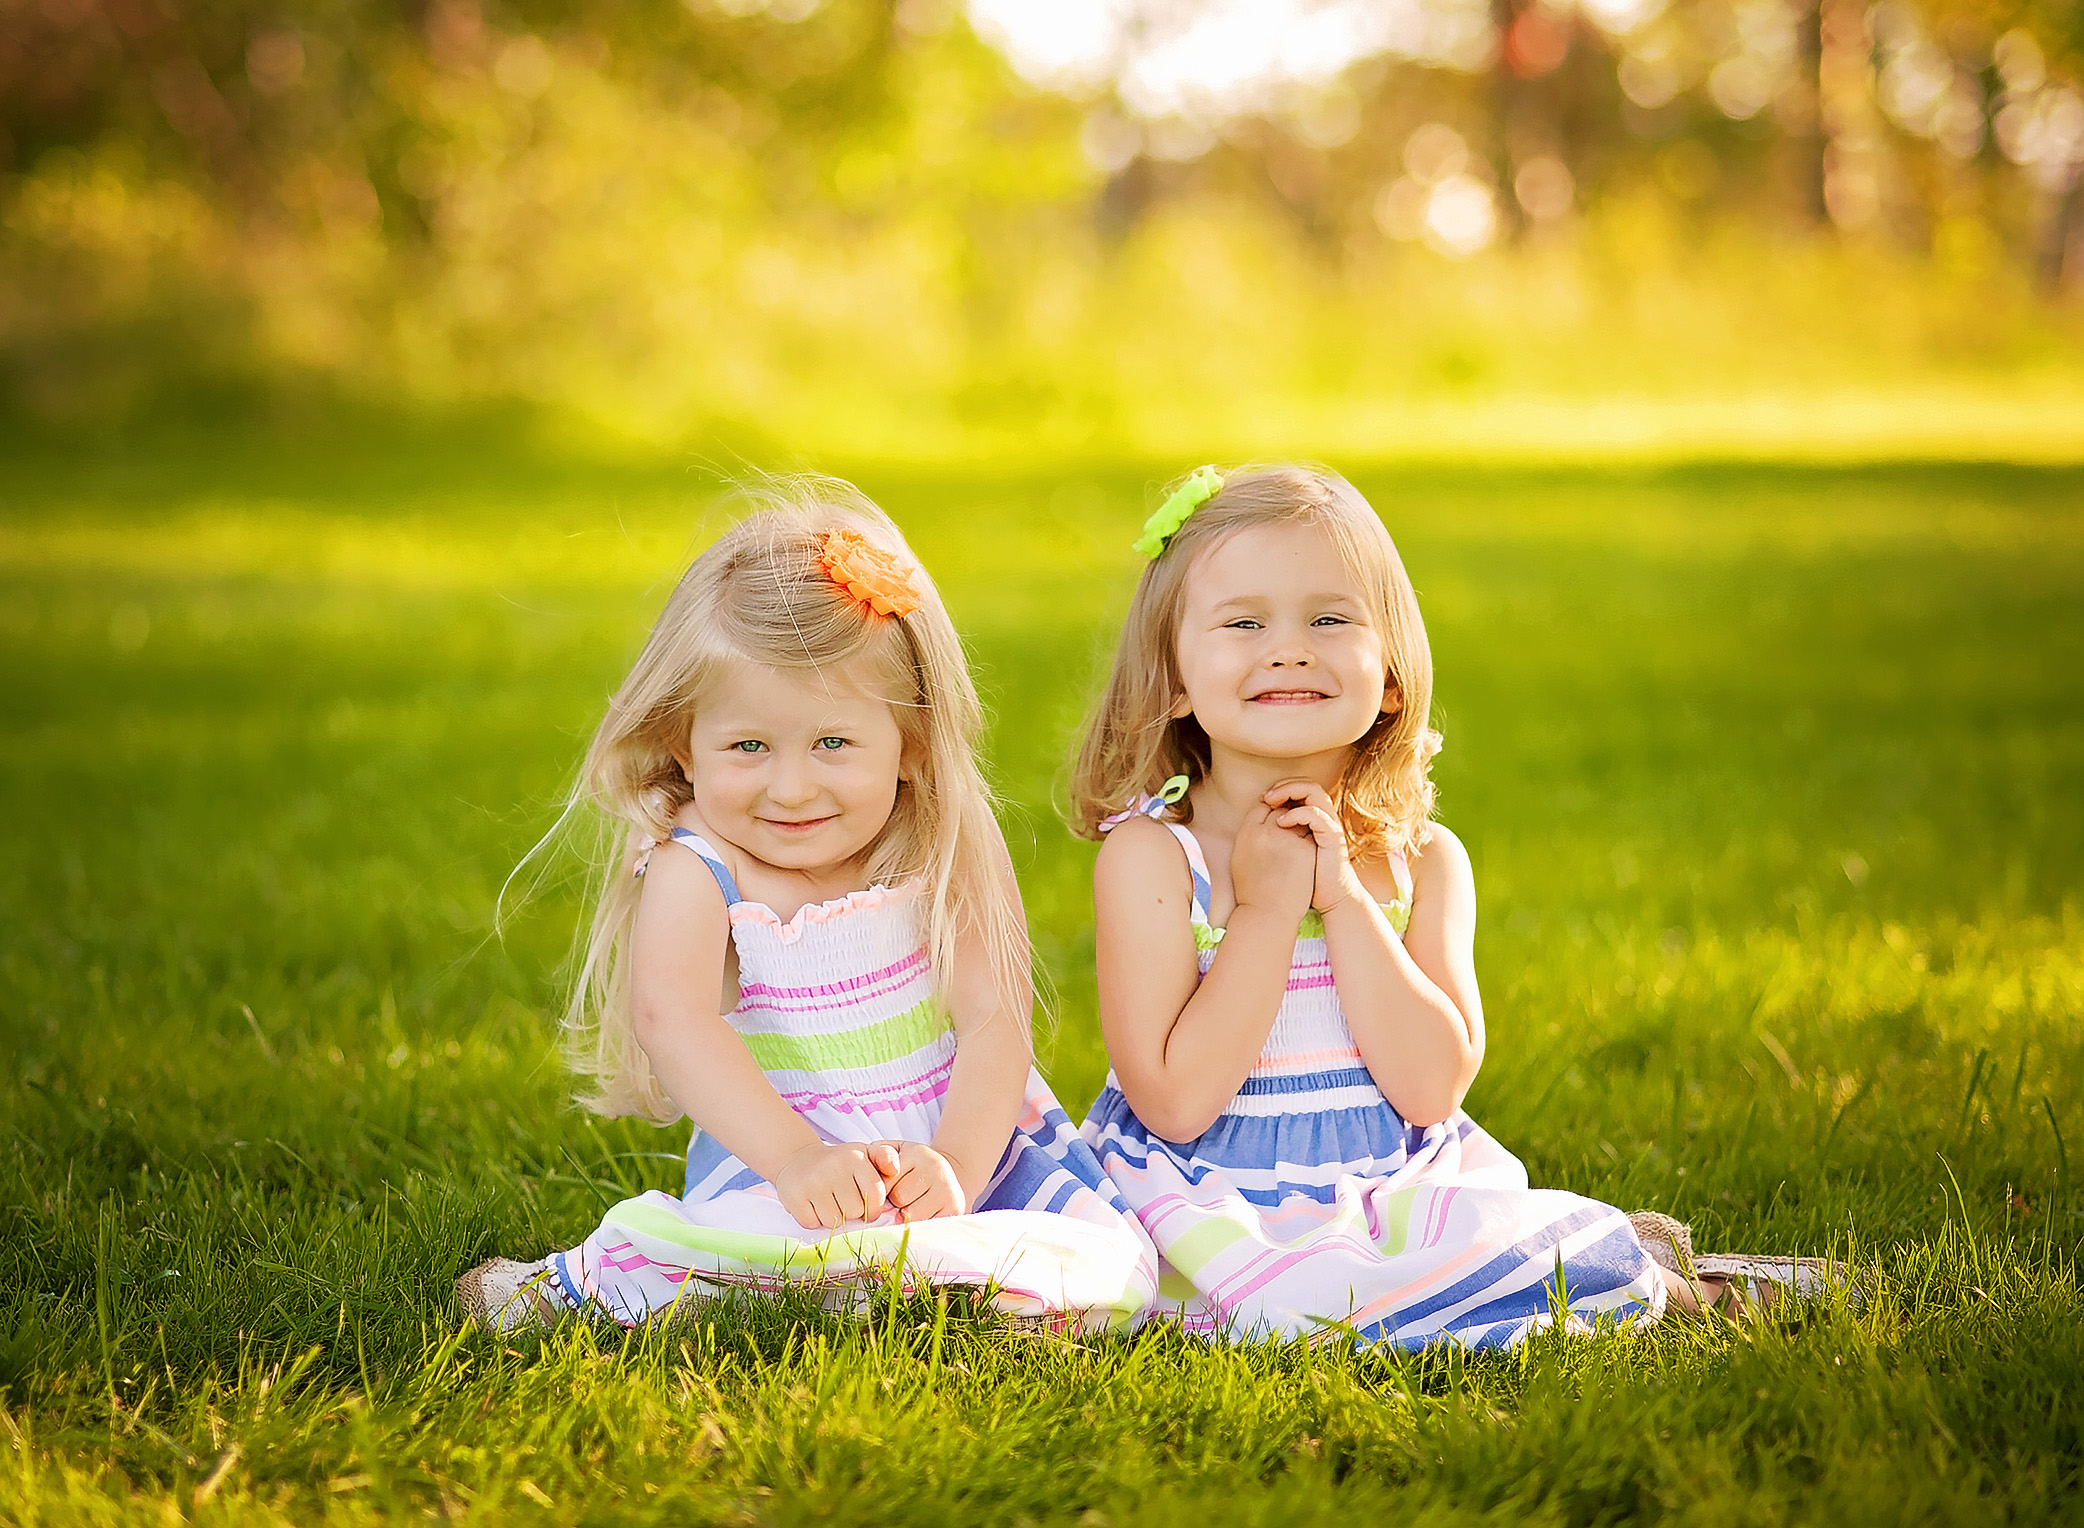 twin girls sitting in a field